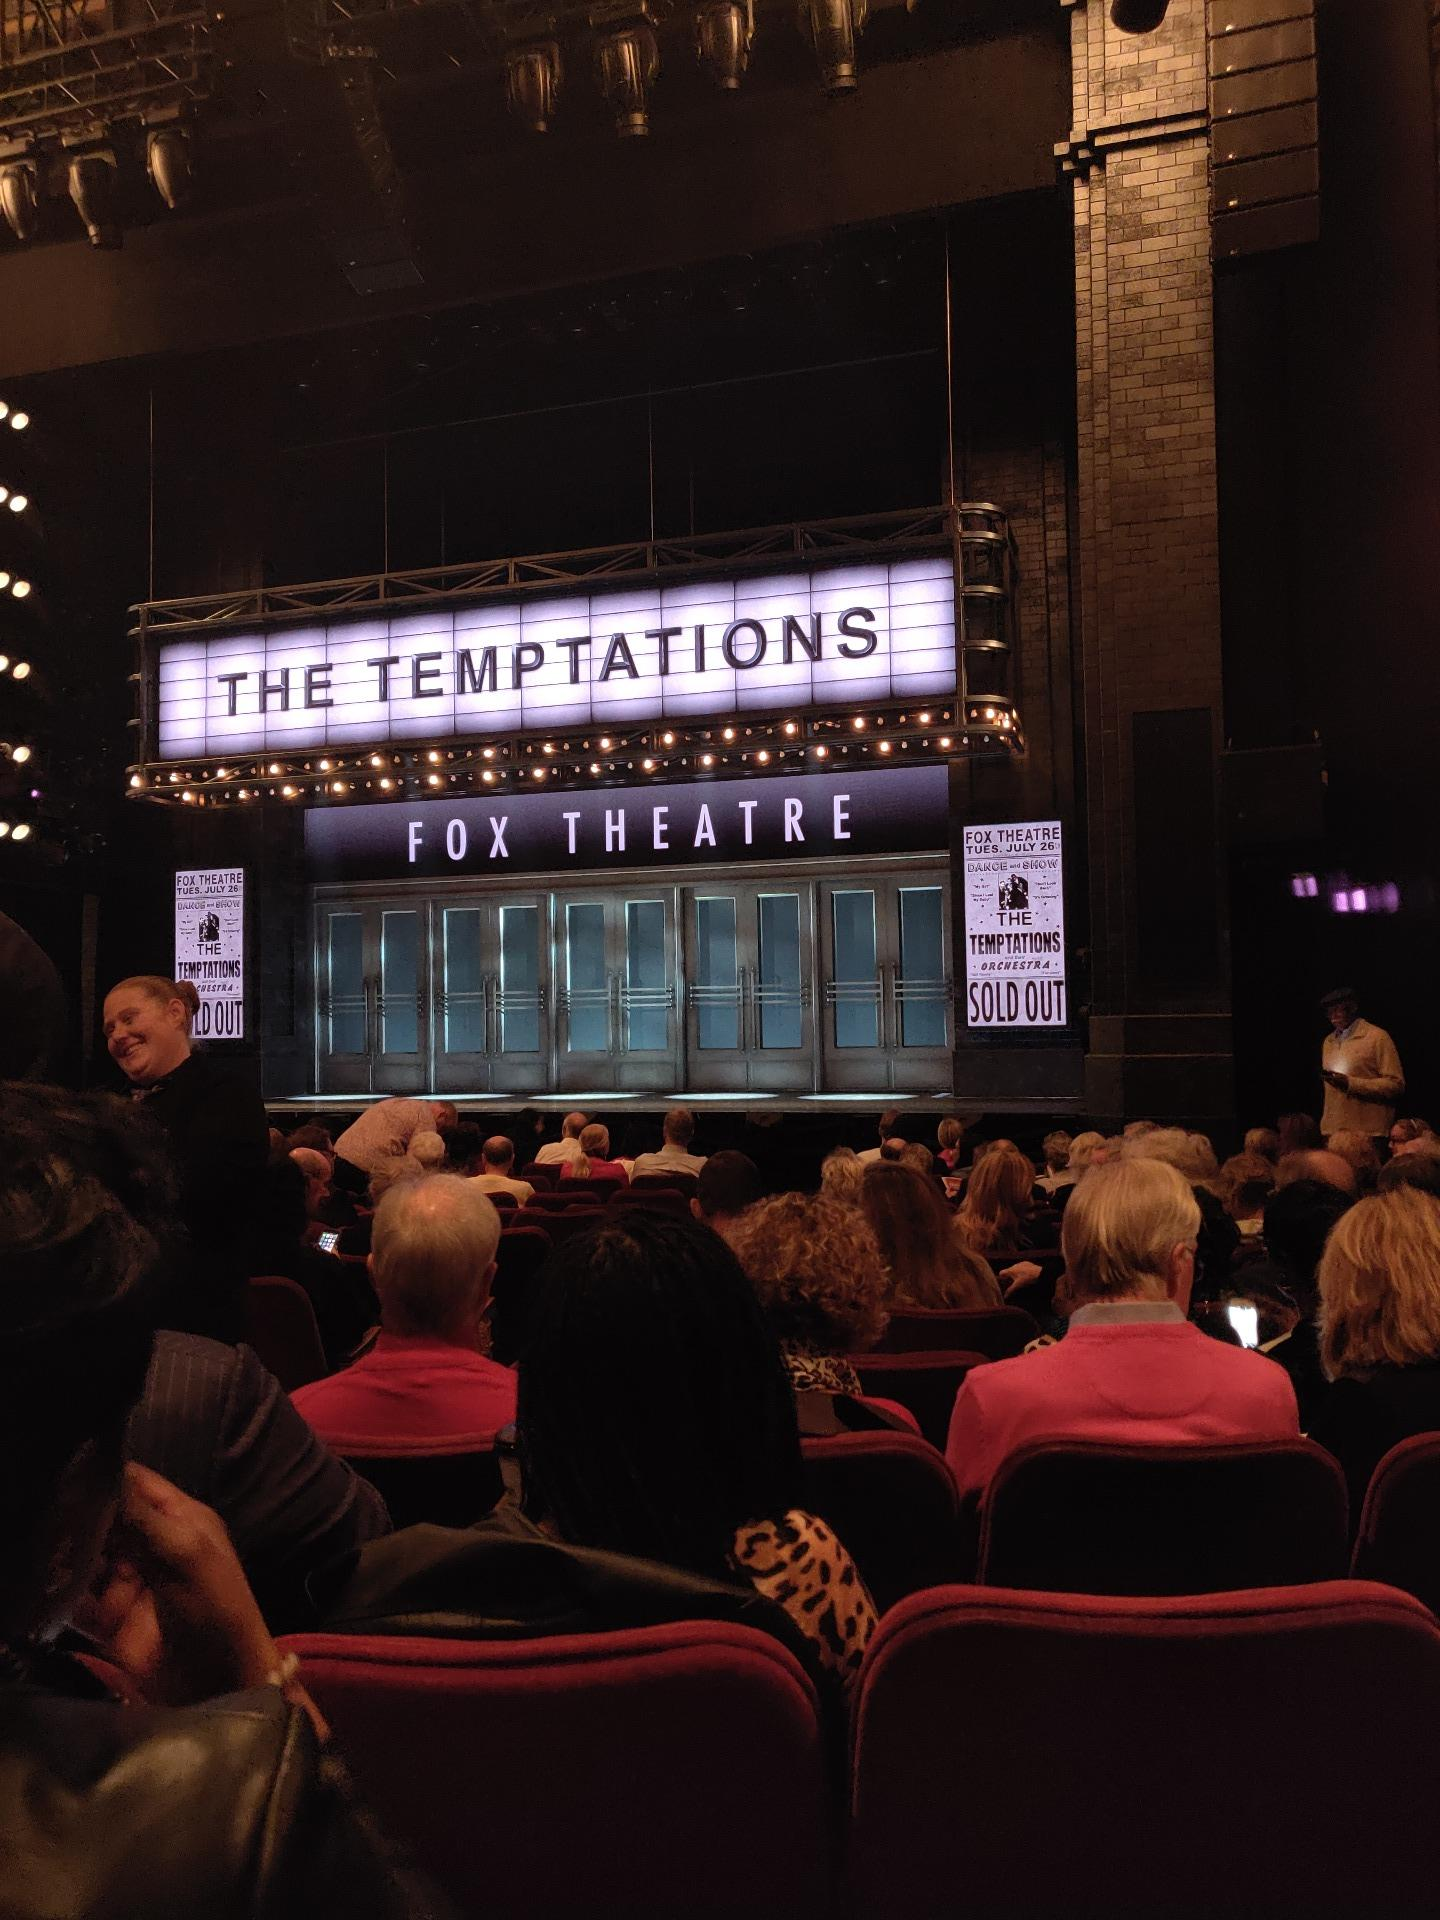 Imperial Theatre Section Orchestra R Row M Seat 3